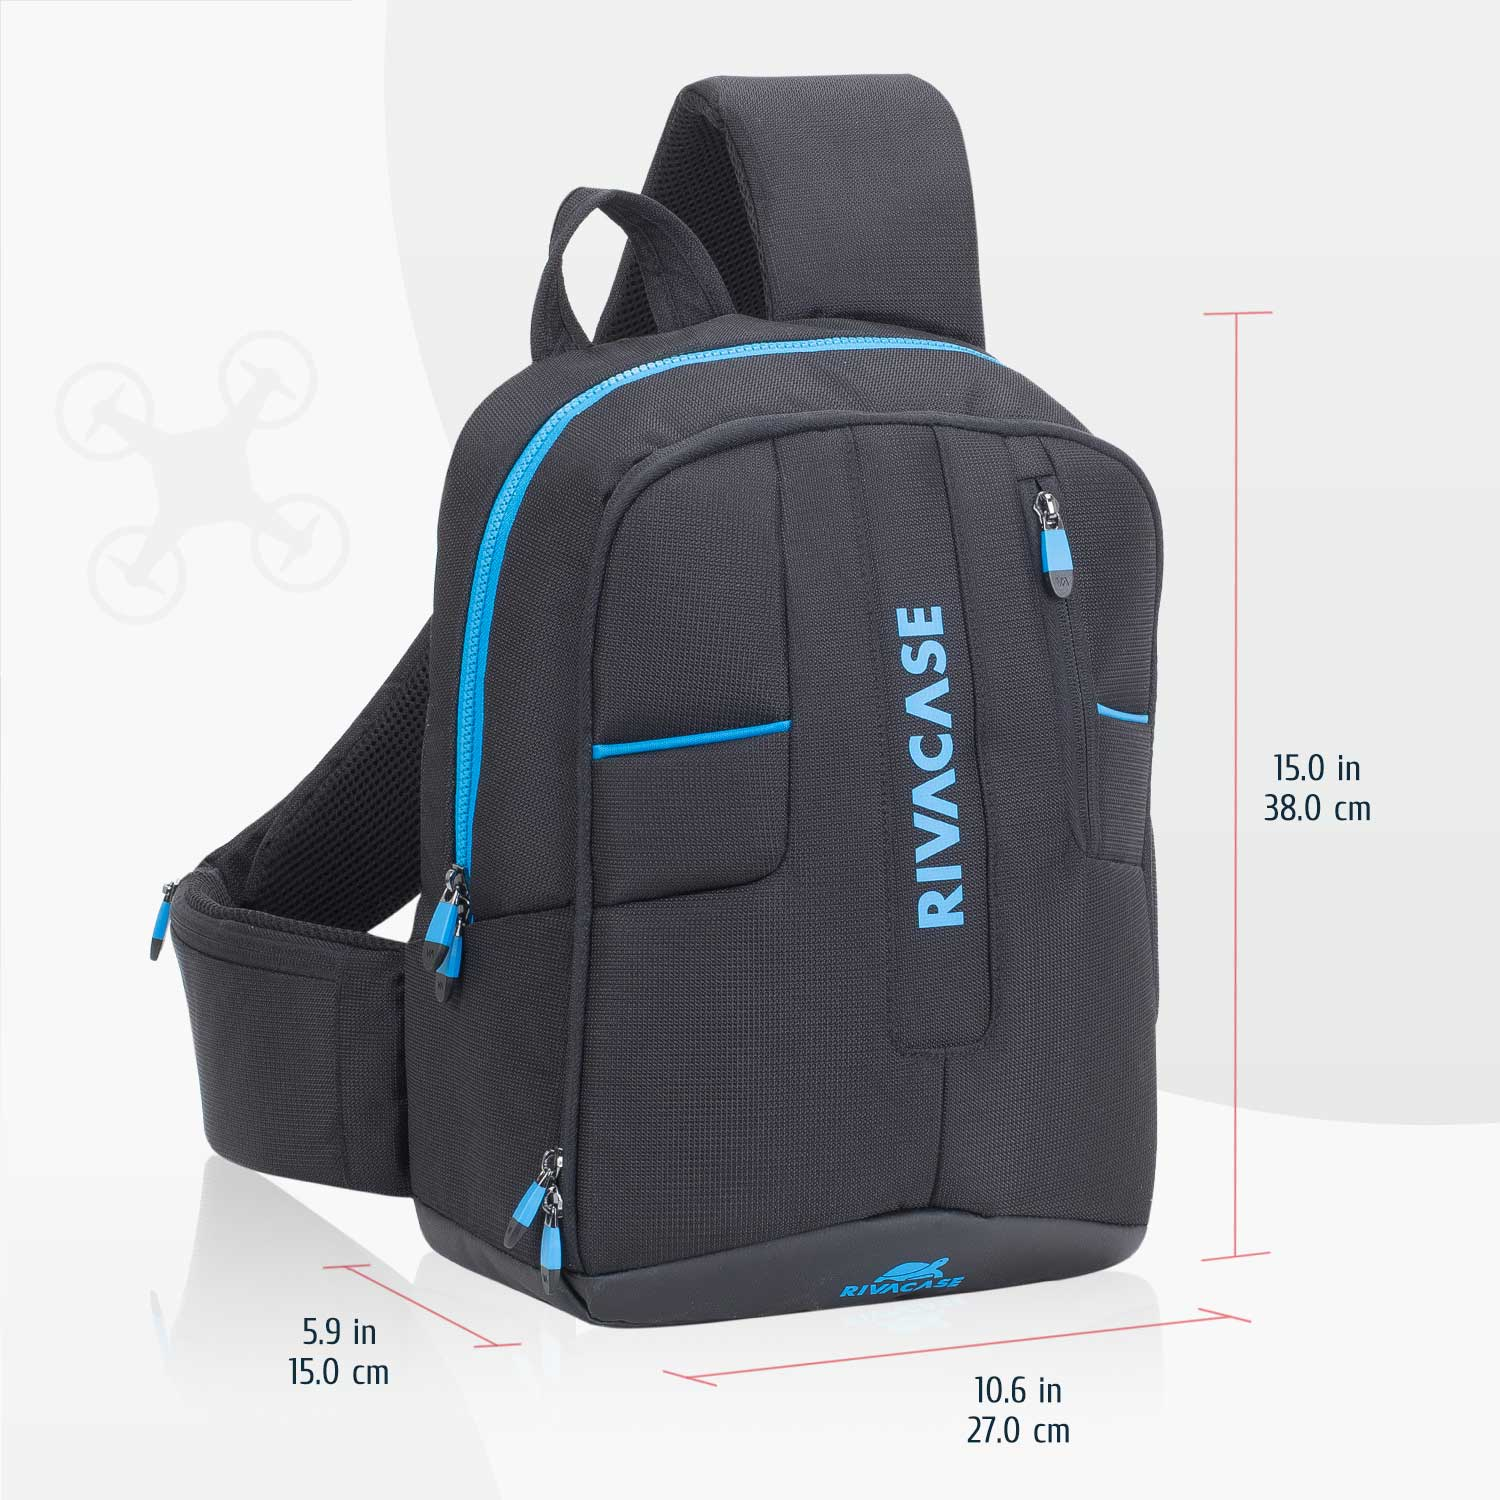 7870 black Drone Slingbag medium for 13.3